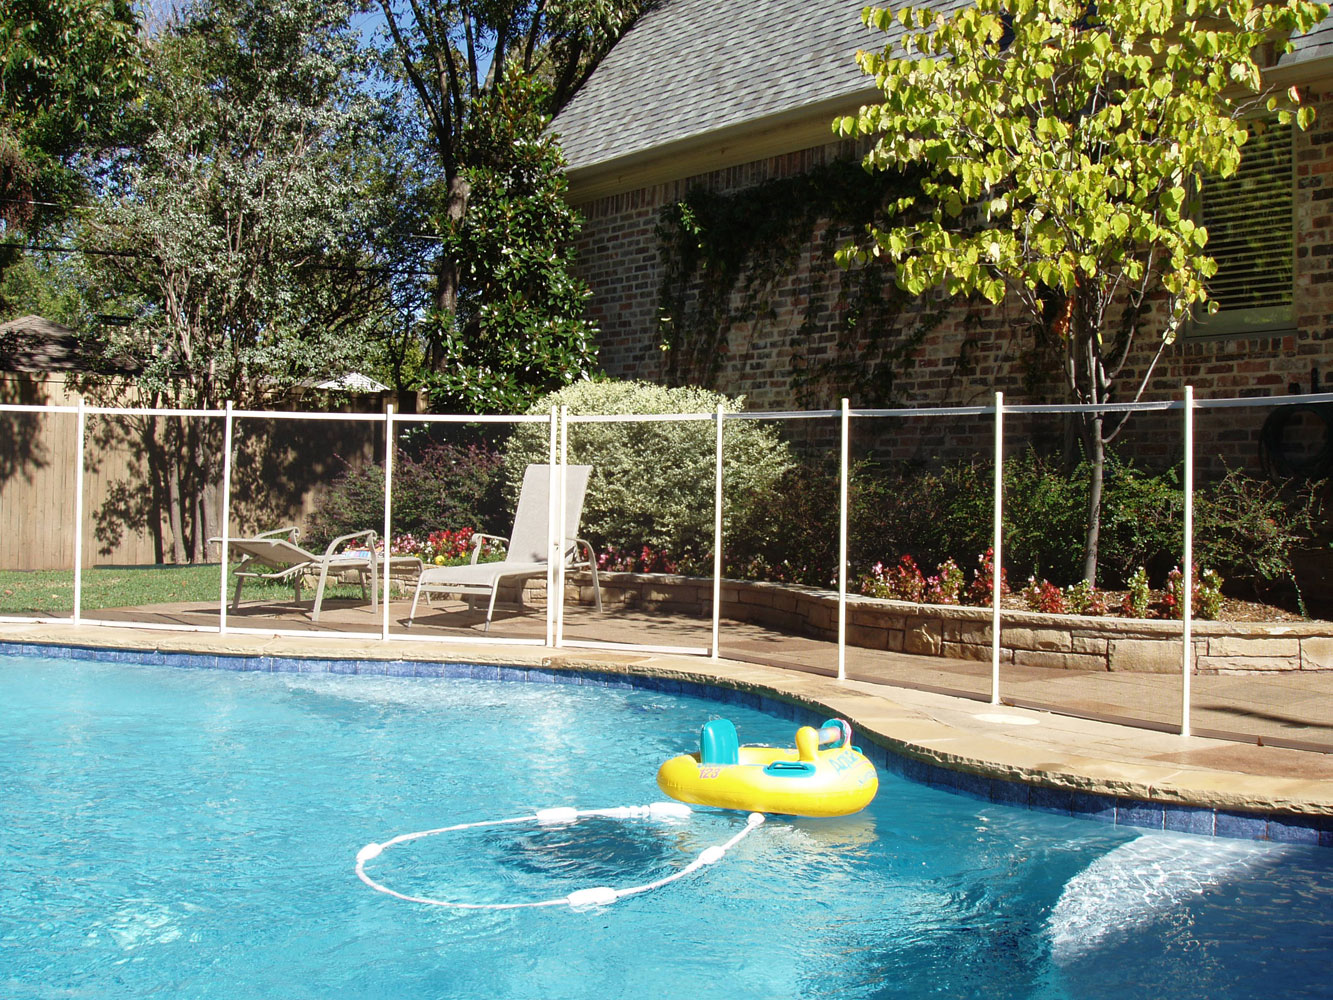 How To Get Rid Of Green Water In A Swimming Pool Childguard Diy Pool Fence